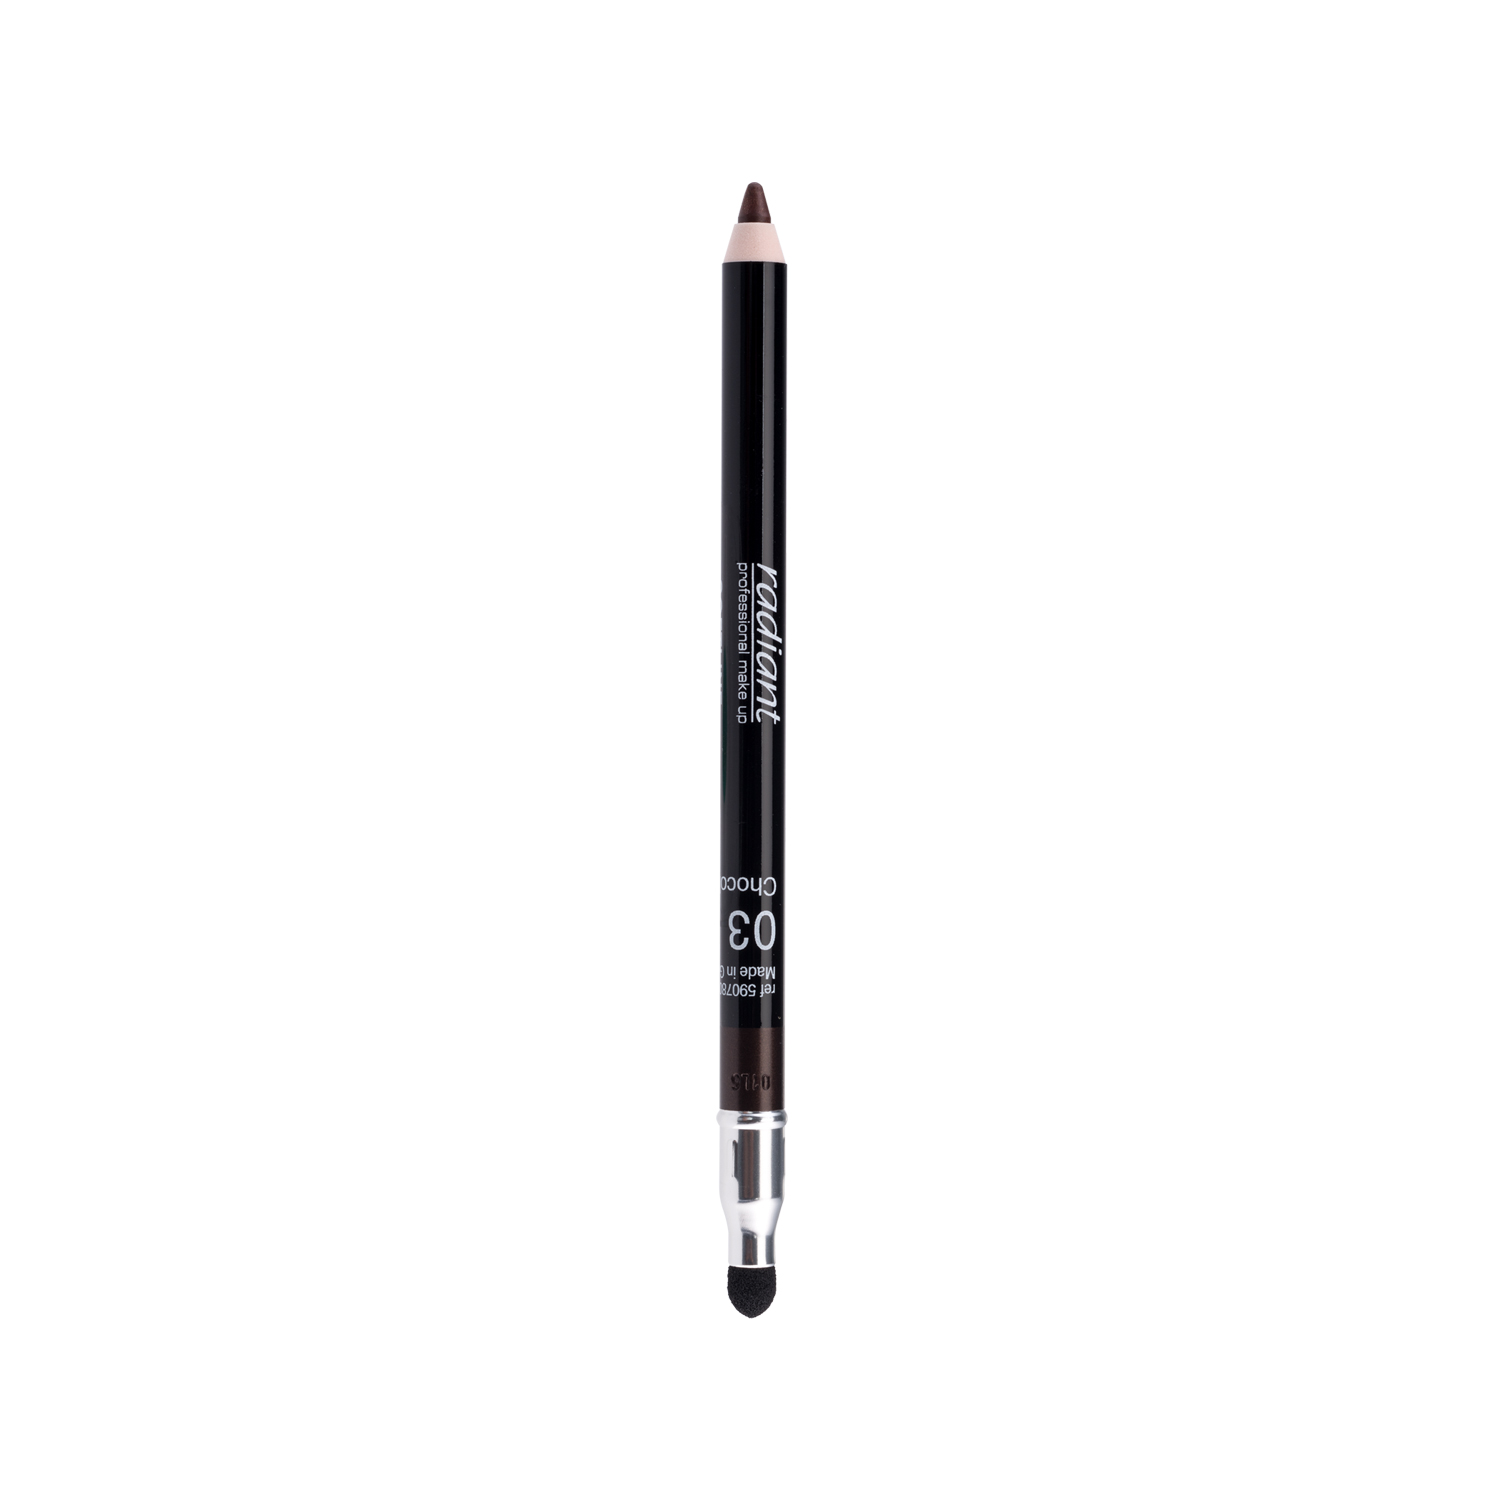 SOFTLINE WATERPROOF EYE PENCIL (03 Chocolate)